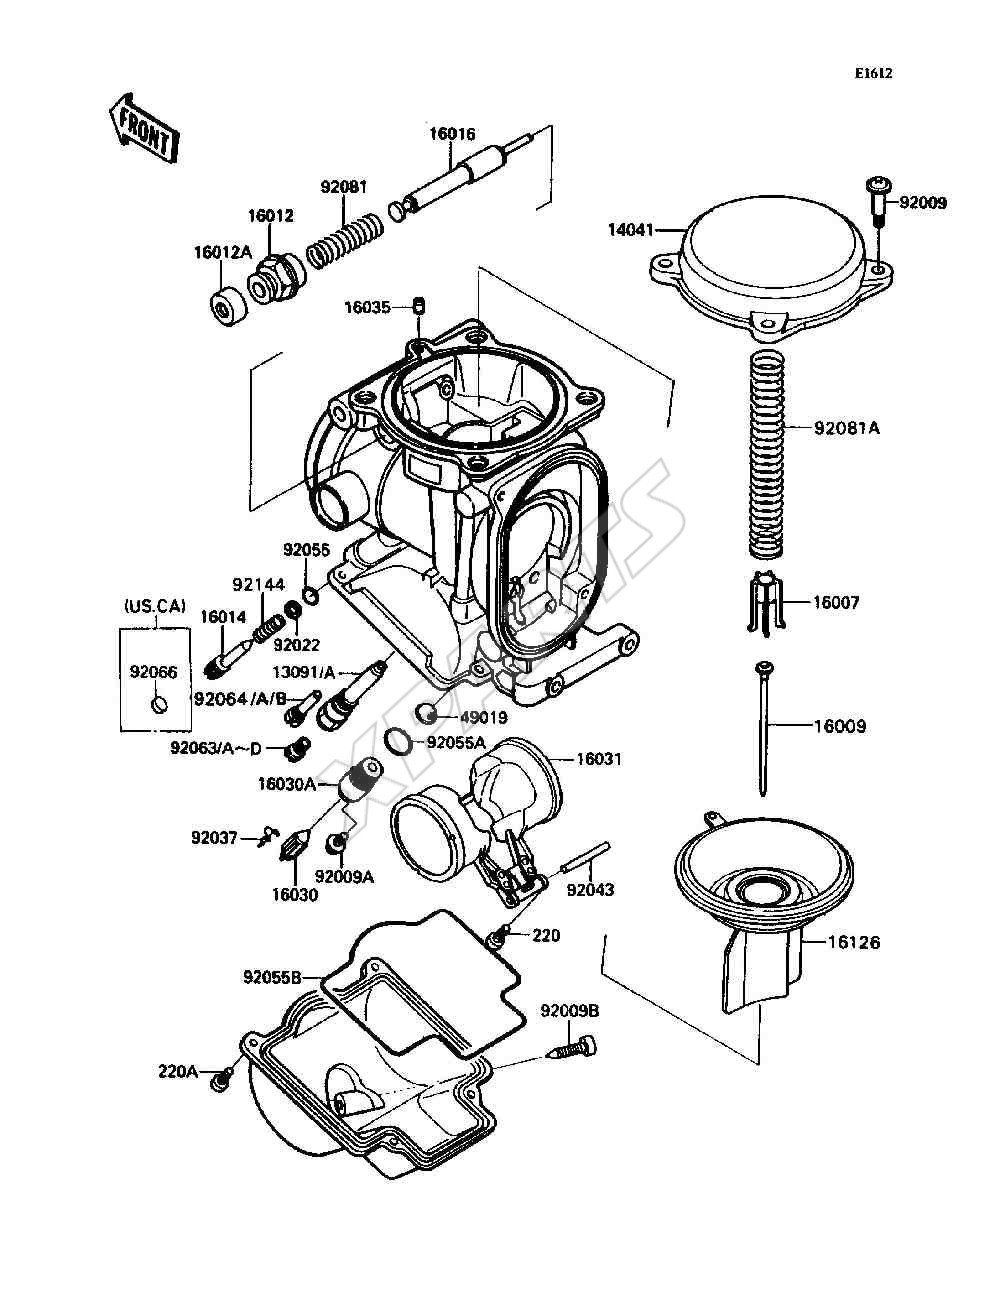 Wiring Diagram Kz750 Chopper, Wiring, Get Free Image About